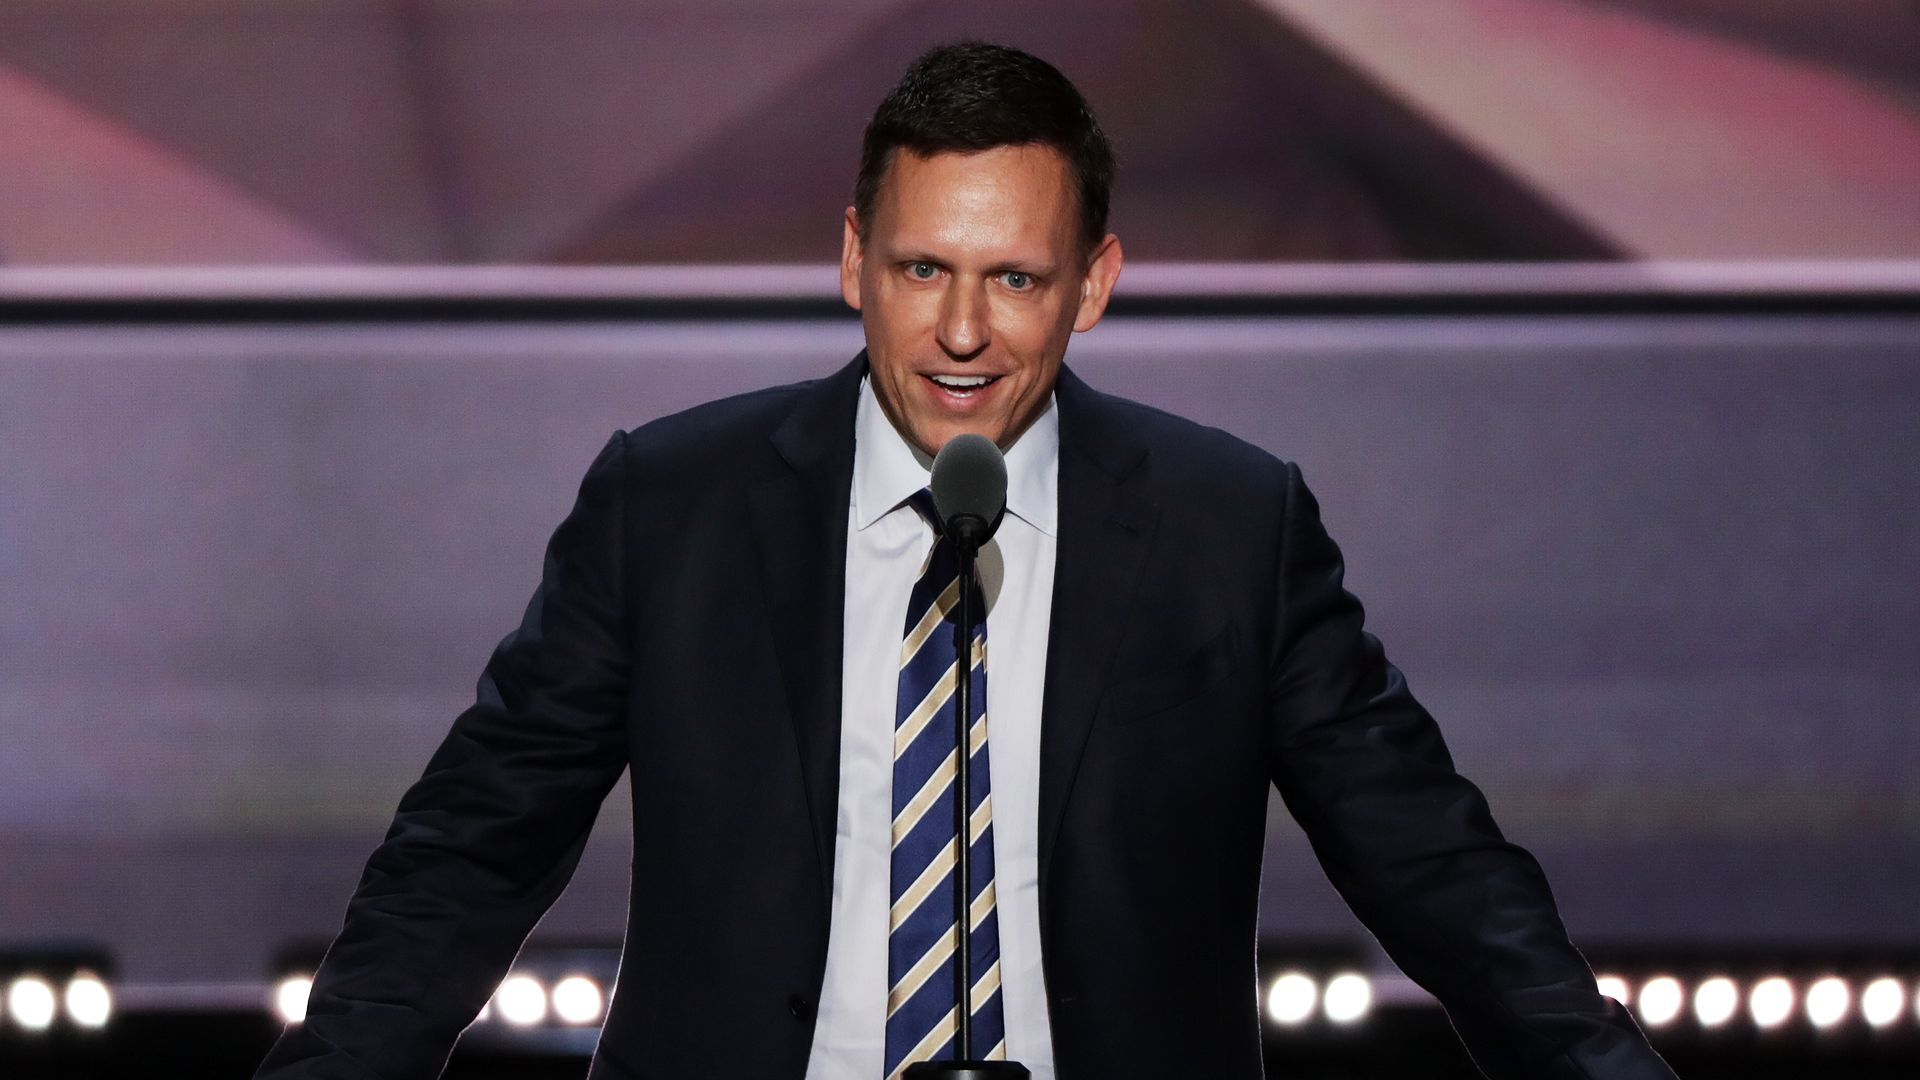 Peter Thiel speaking at the 2016 Republican National Convention.